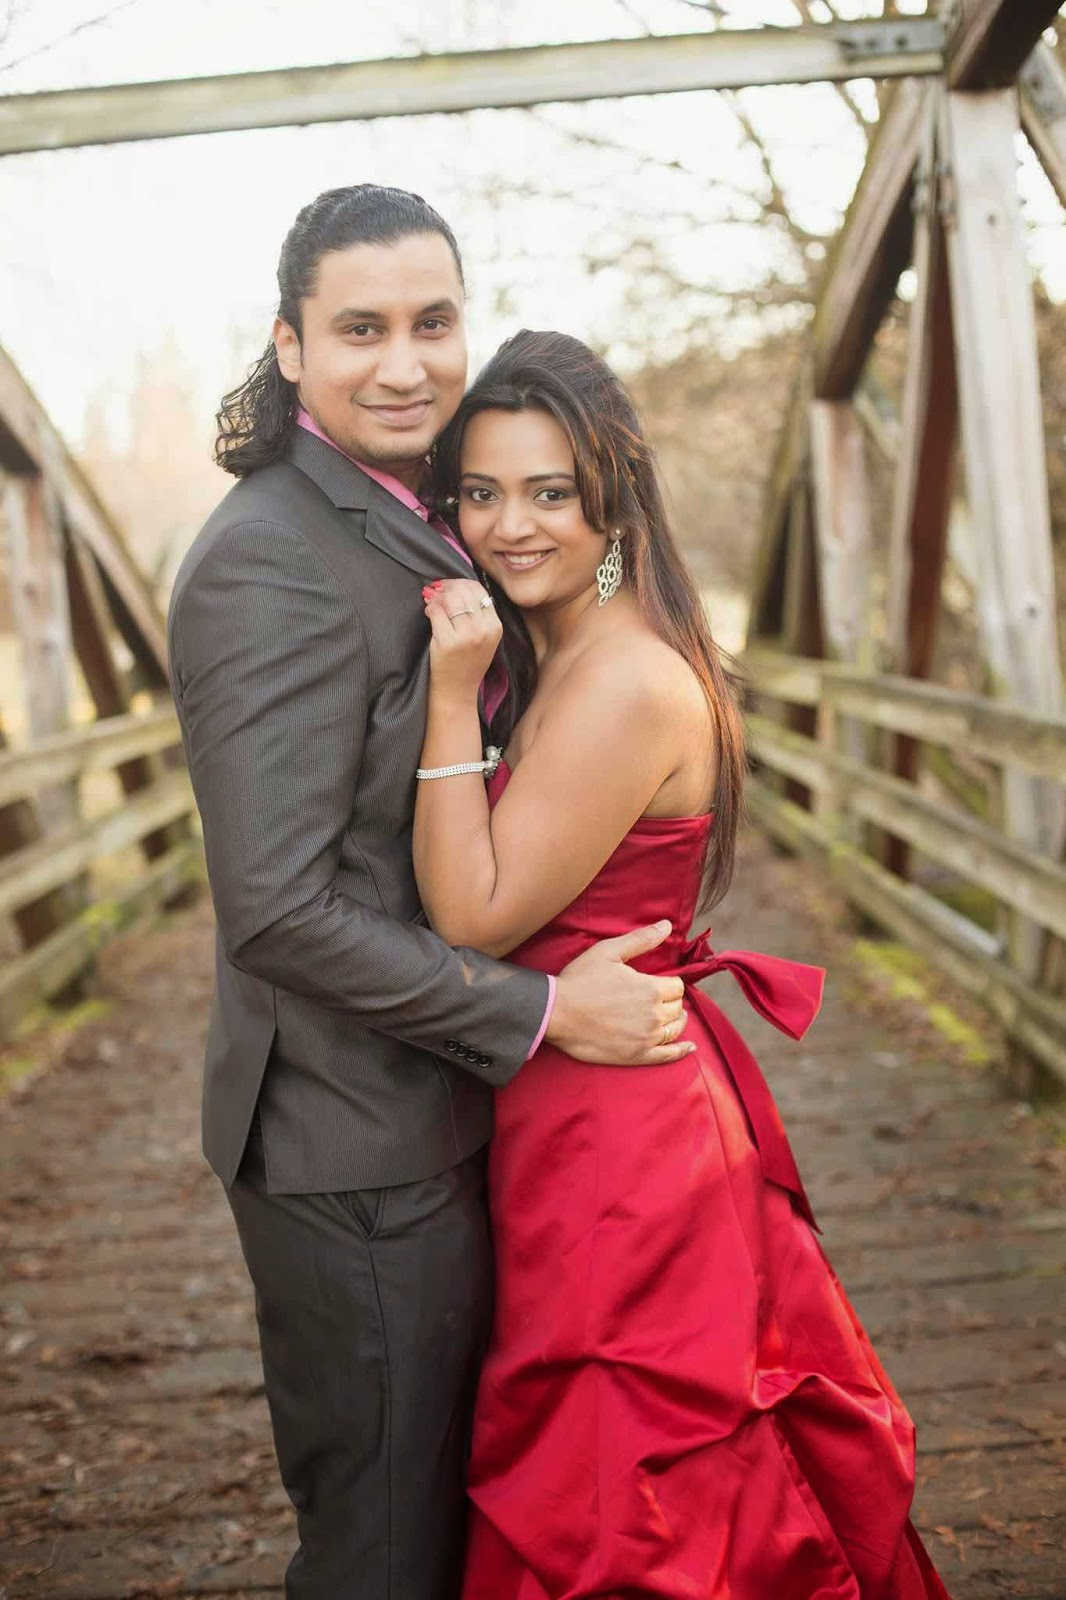 pre wedding shoots, Indian couple in love, Girl in red gown, Couple shoot, Ananya's wedding pictures